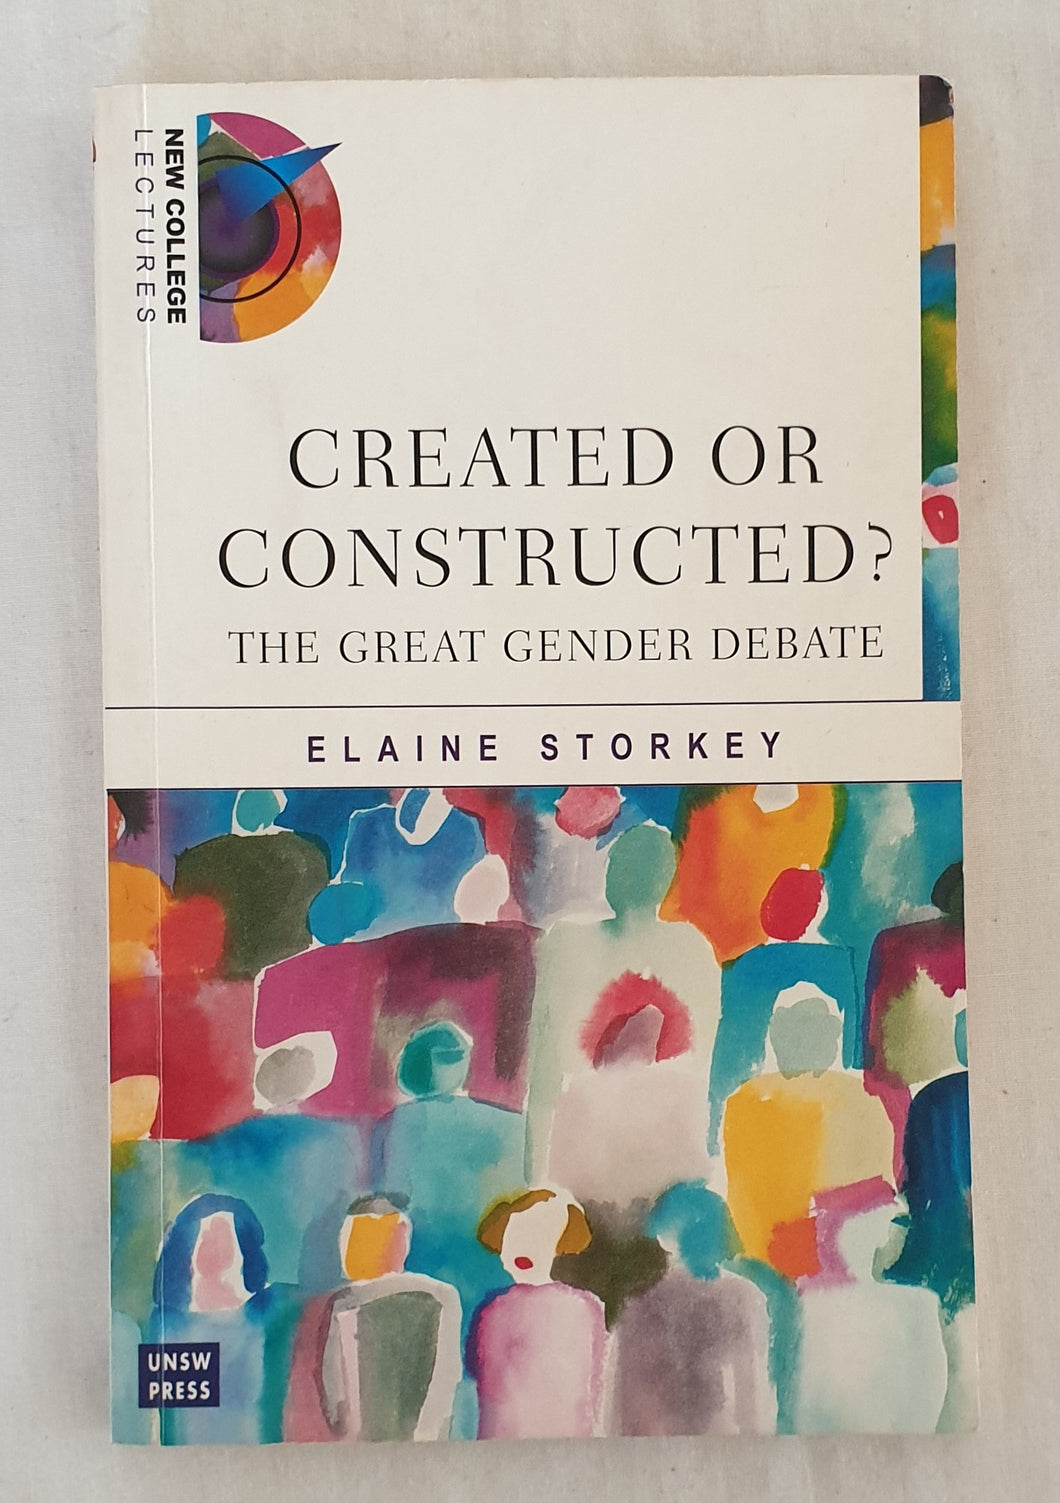 Created or Constructed? by Elaine Storkey